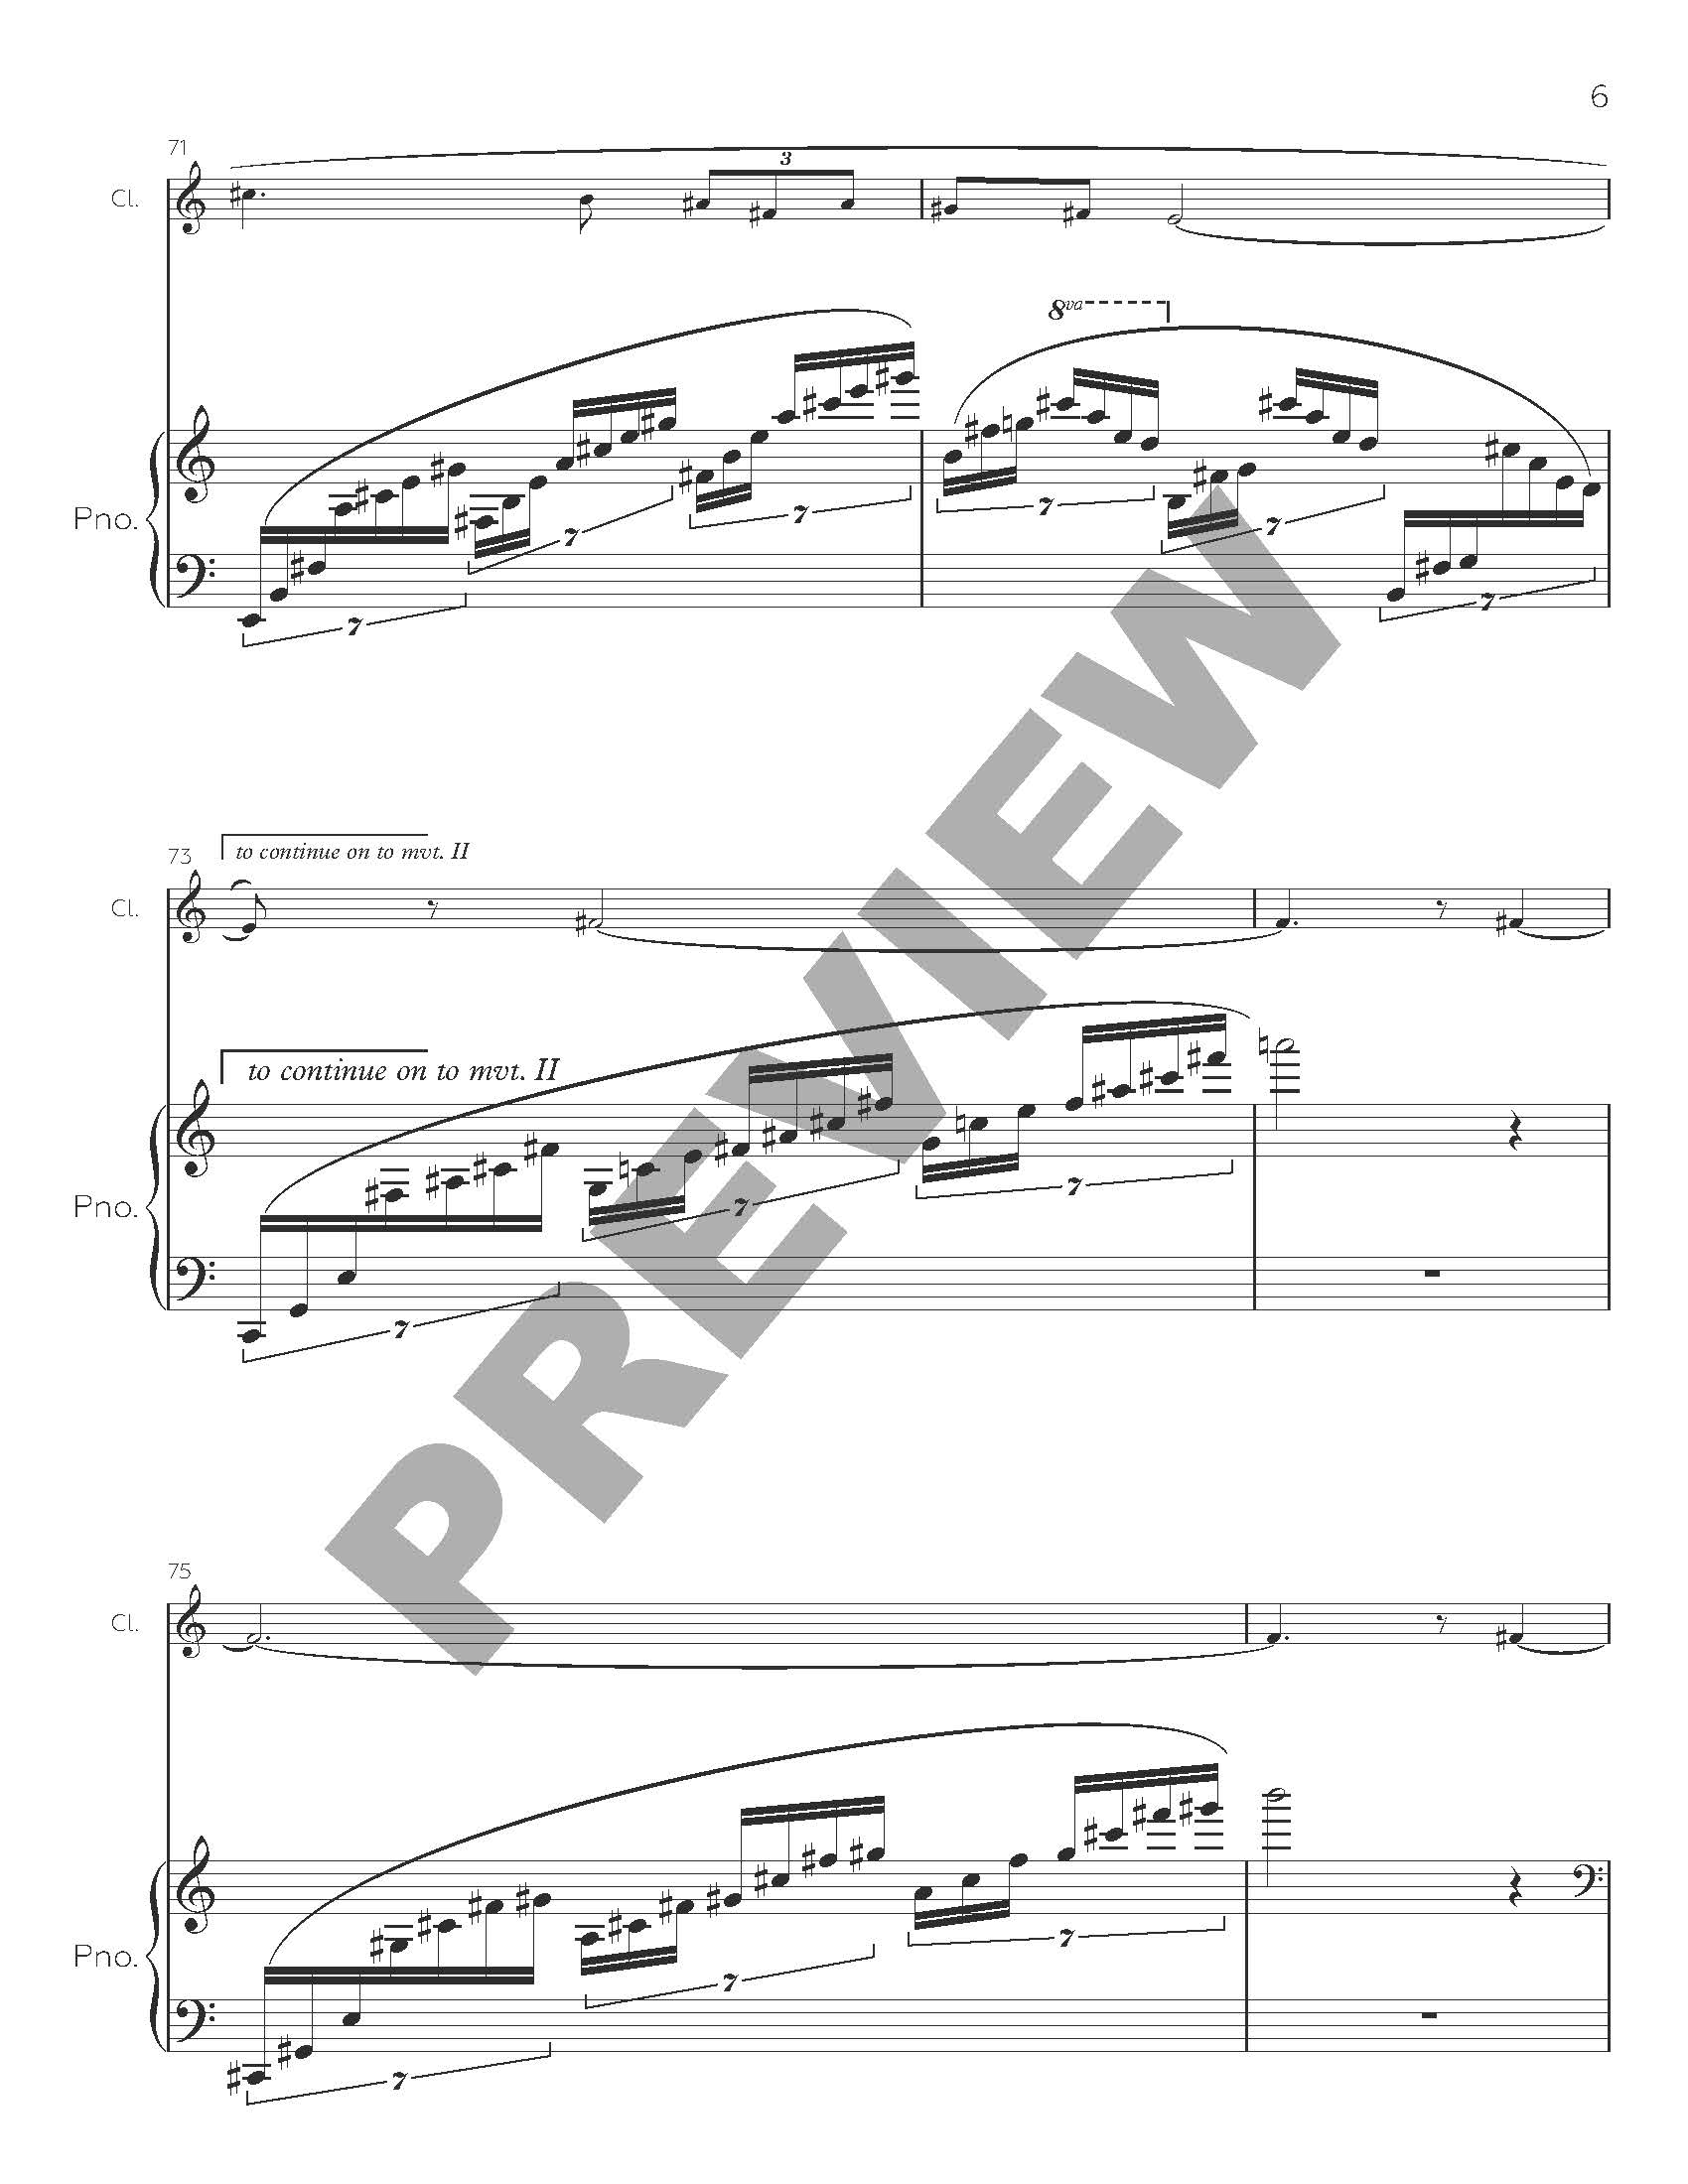 Two Novellas for Clarinet and Piano_Page_08.jpg